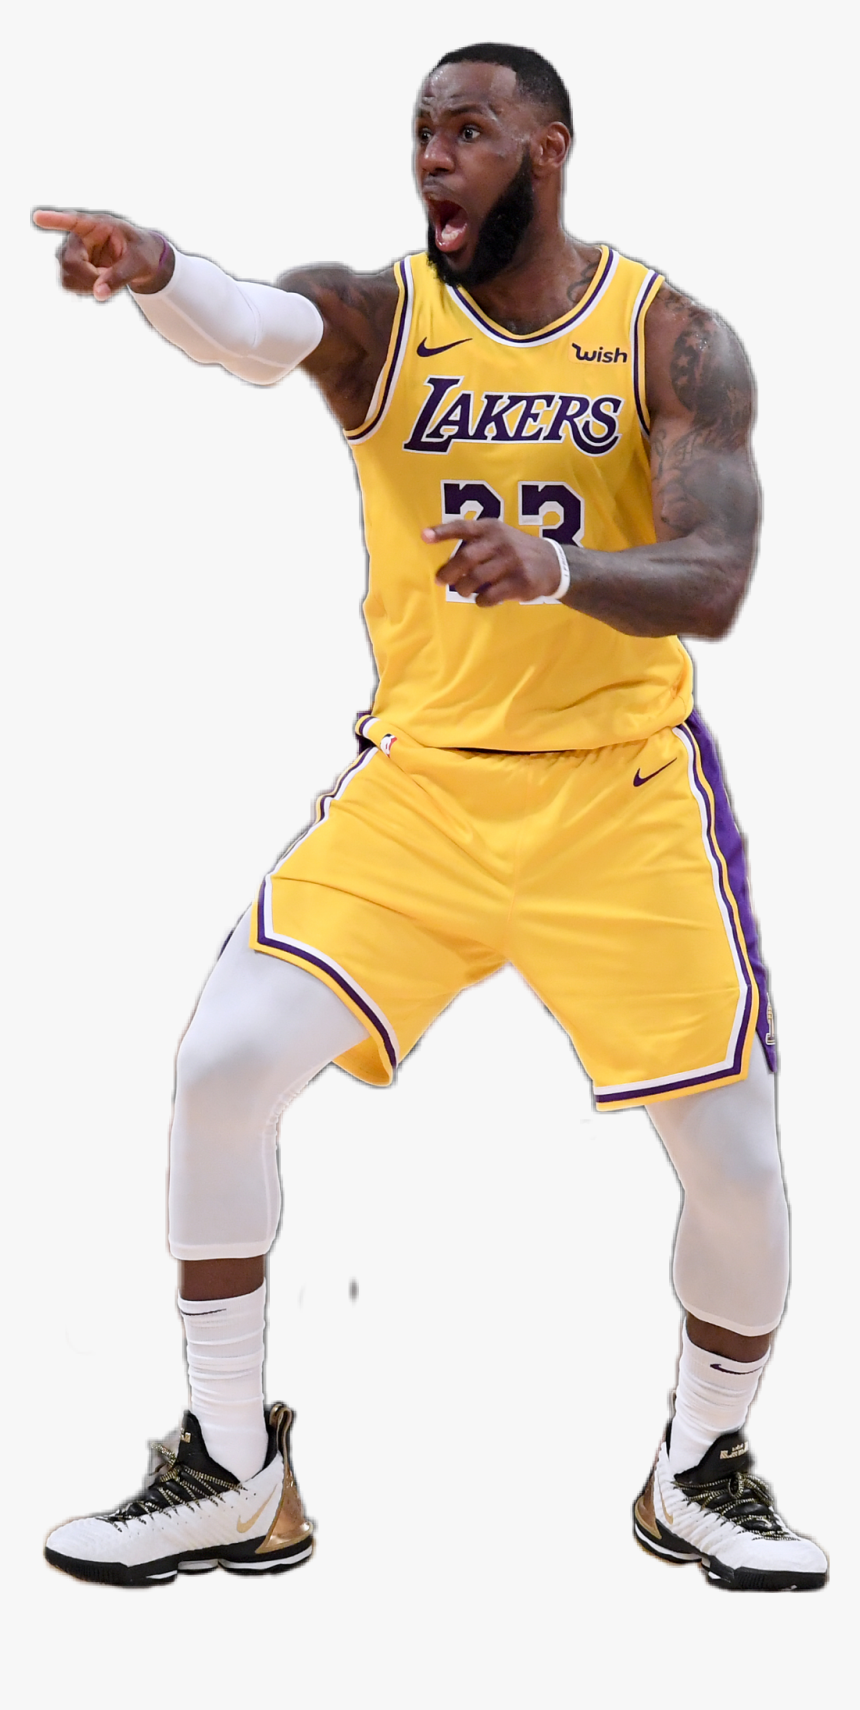 Transparent Lebron James Clipart Lebron James Lakers Transparent Hd Png Download Kindpng